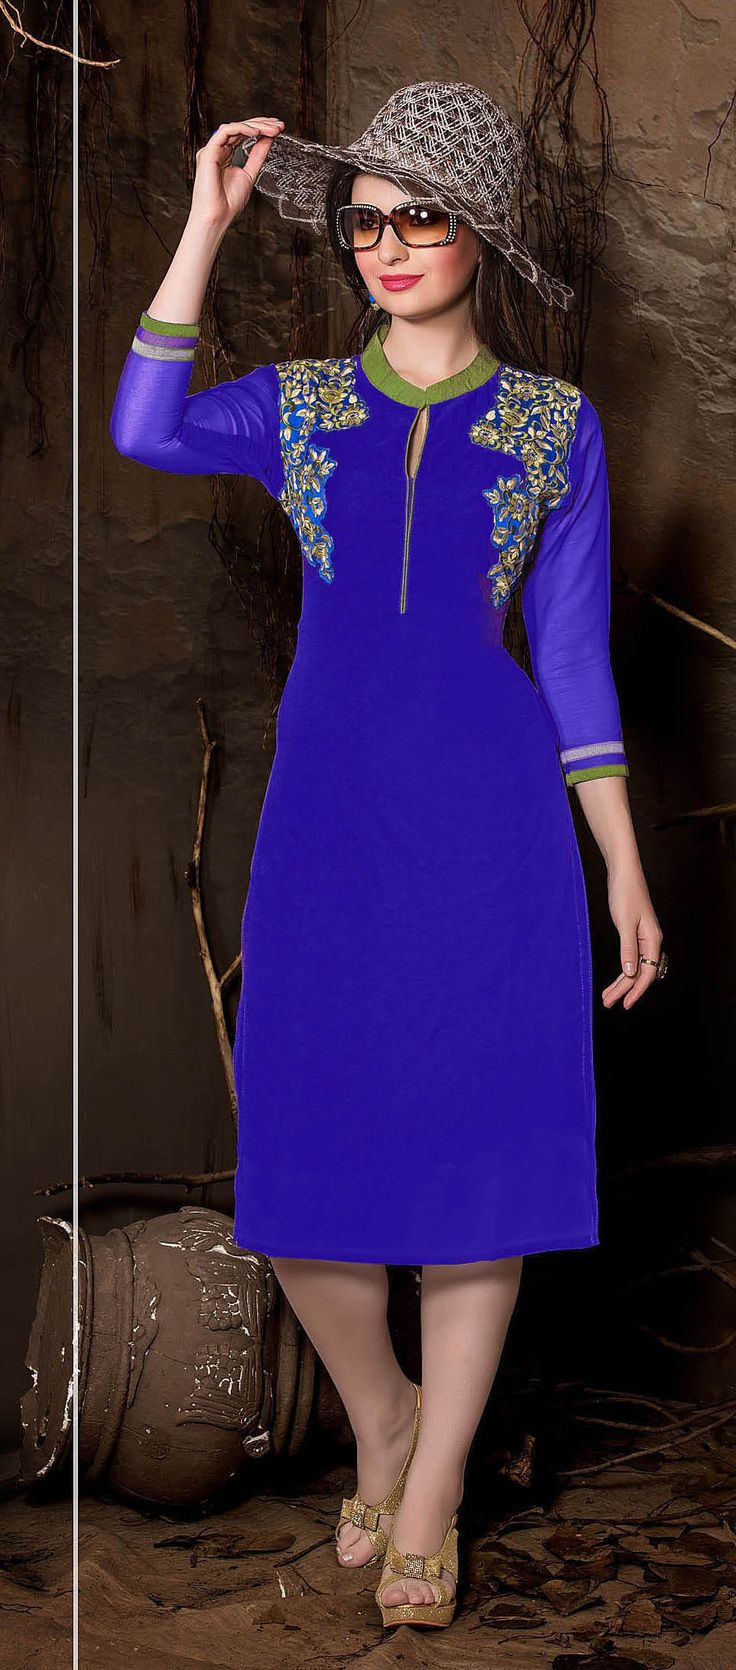 Get huge collection of innara trendz designer kurtis for women from Bollywoodkart at best prices.